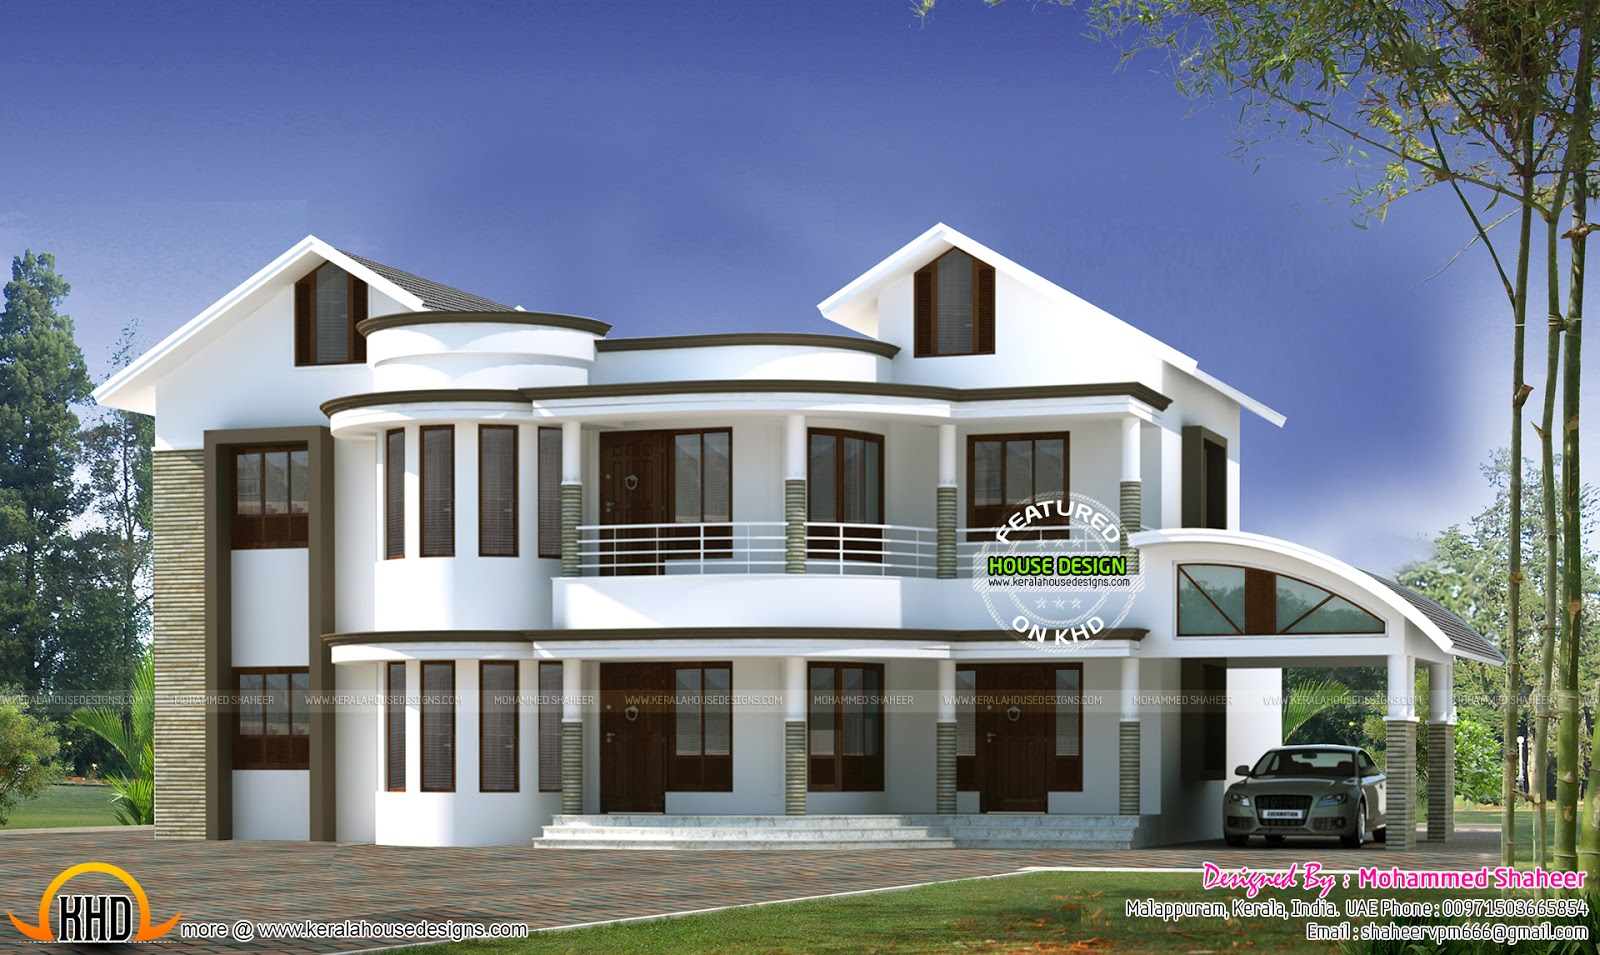 3000 sq ft mixed roof modern home kerala home design and for 3000 sq ft house cost